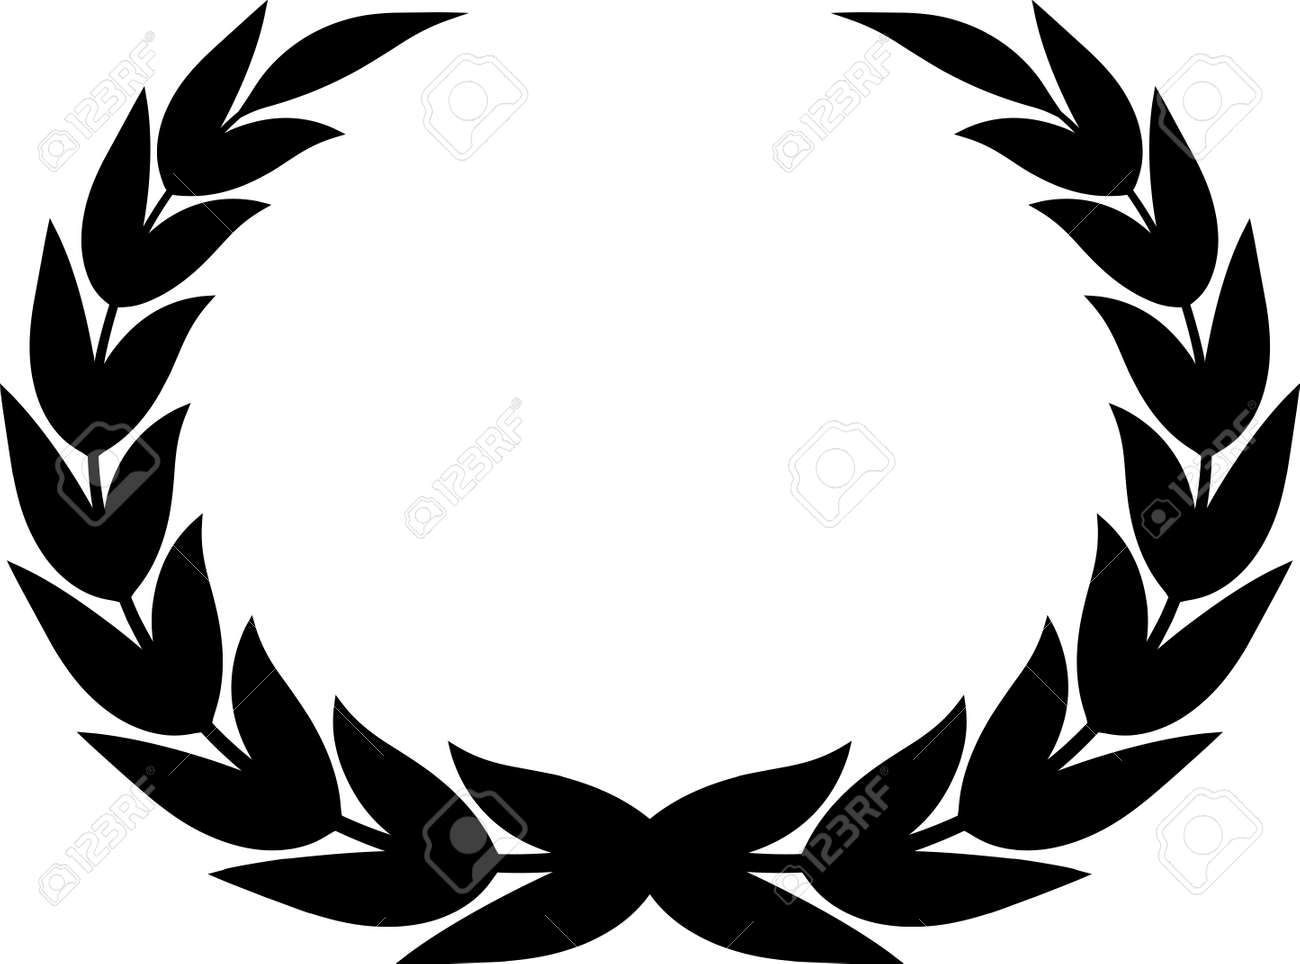 laurel wreath clipart drawing isolated royalty free cliparts rh 123rf com wreath clip art free black and white wreath clipart black and white